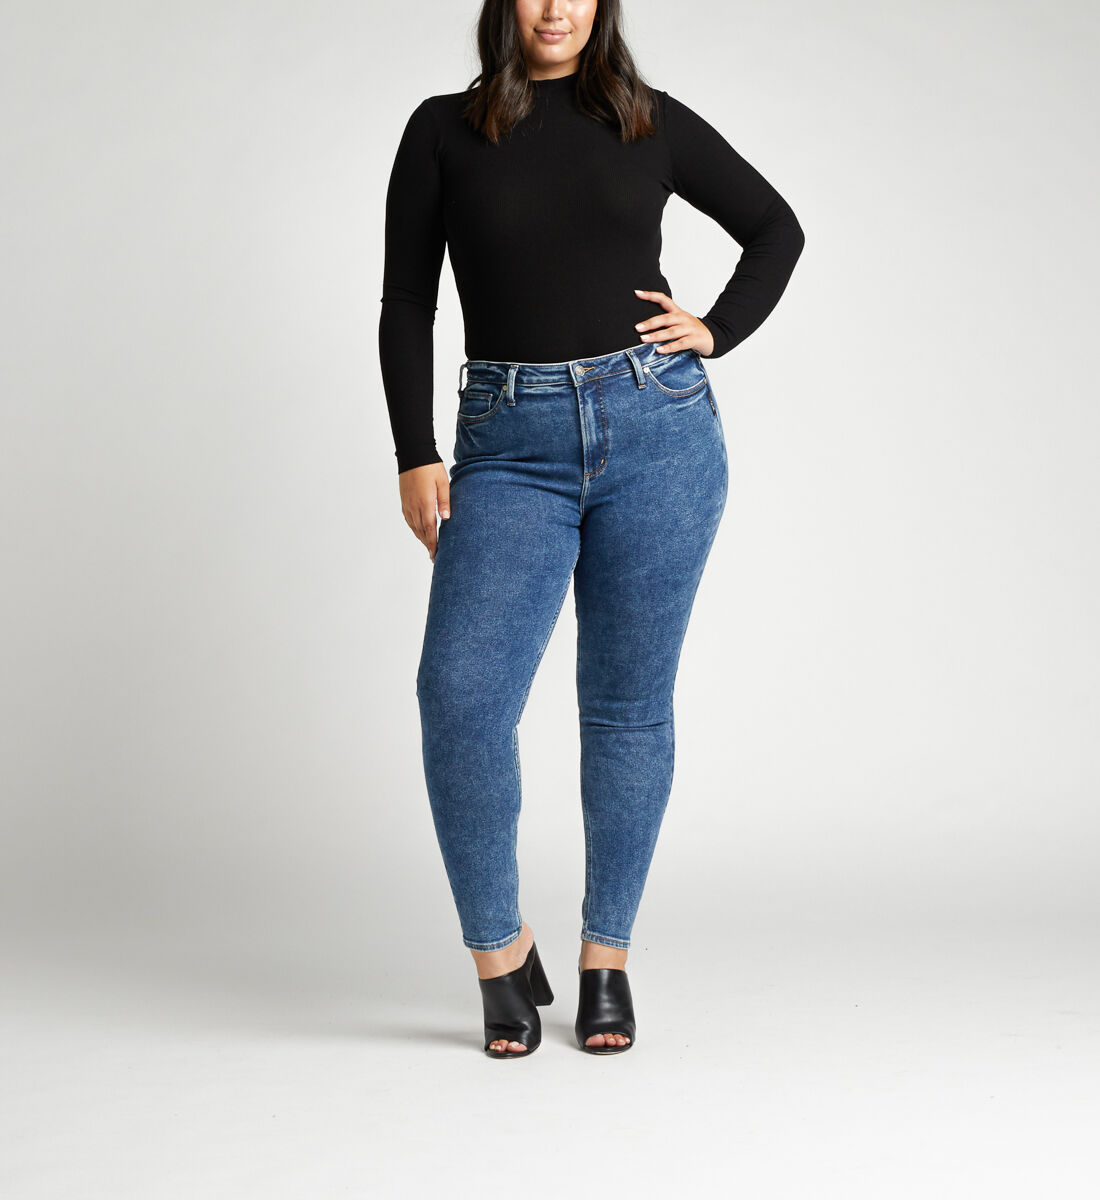 High Note High Rise Skinny Plus Size Jeans Alt Image 1